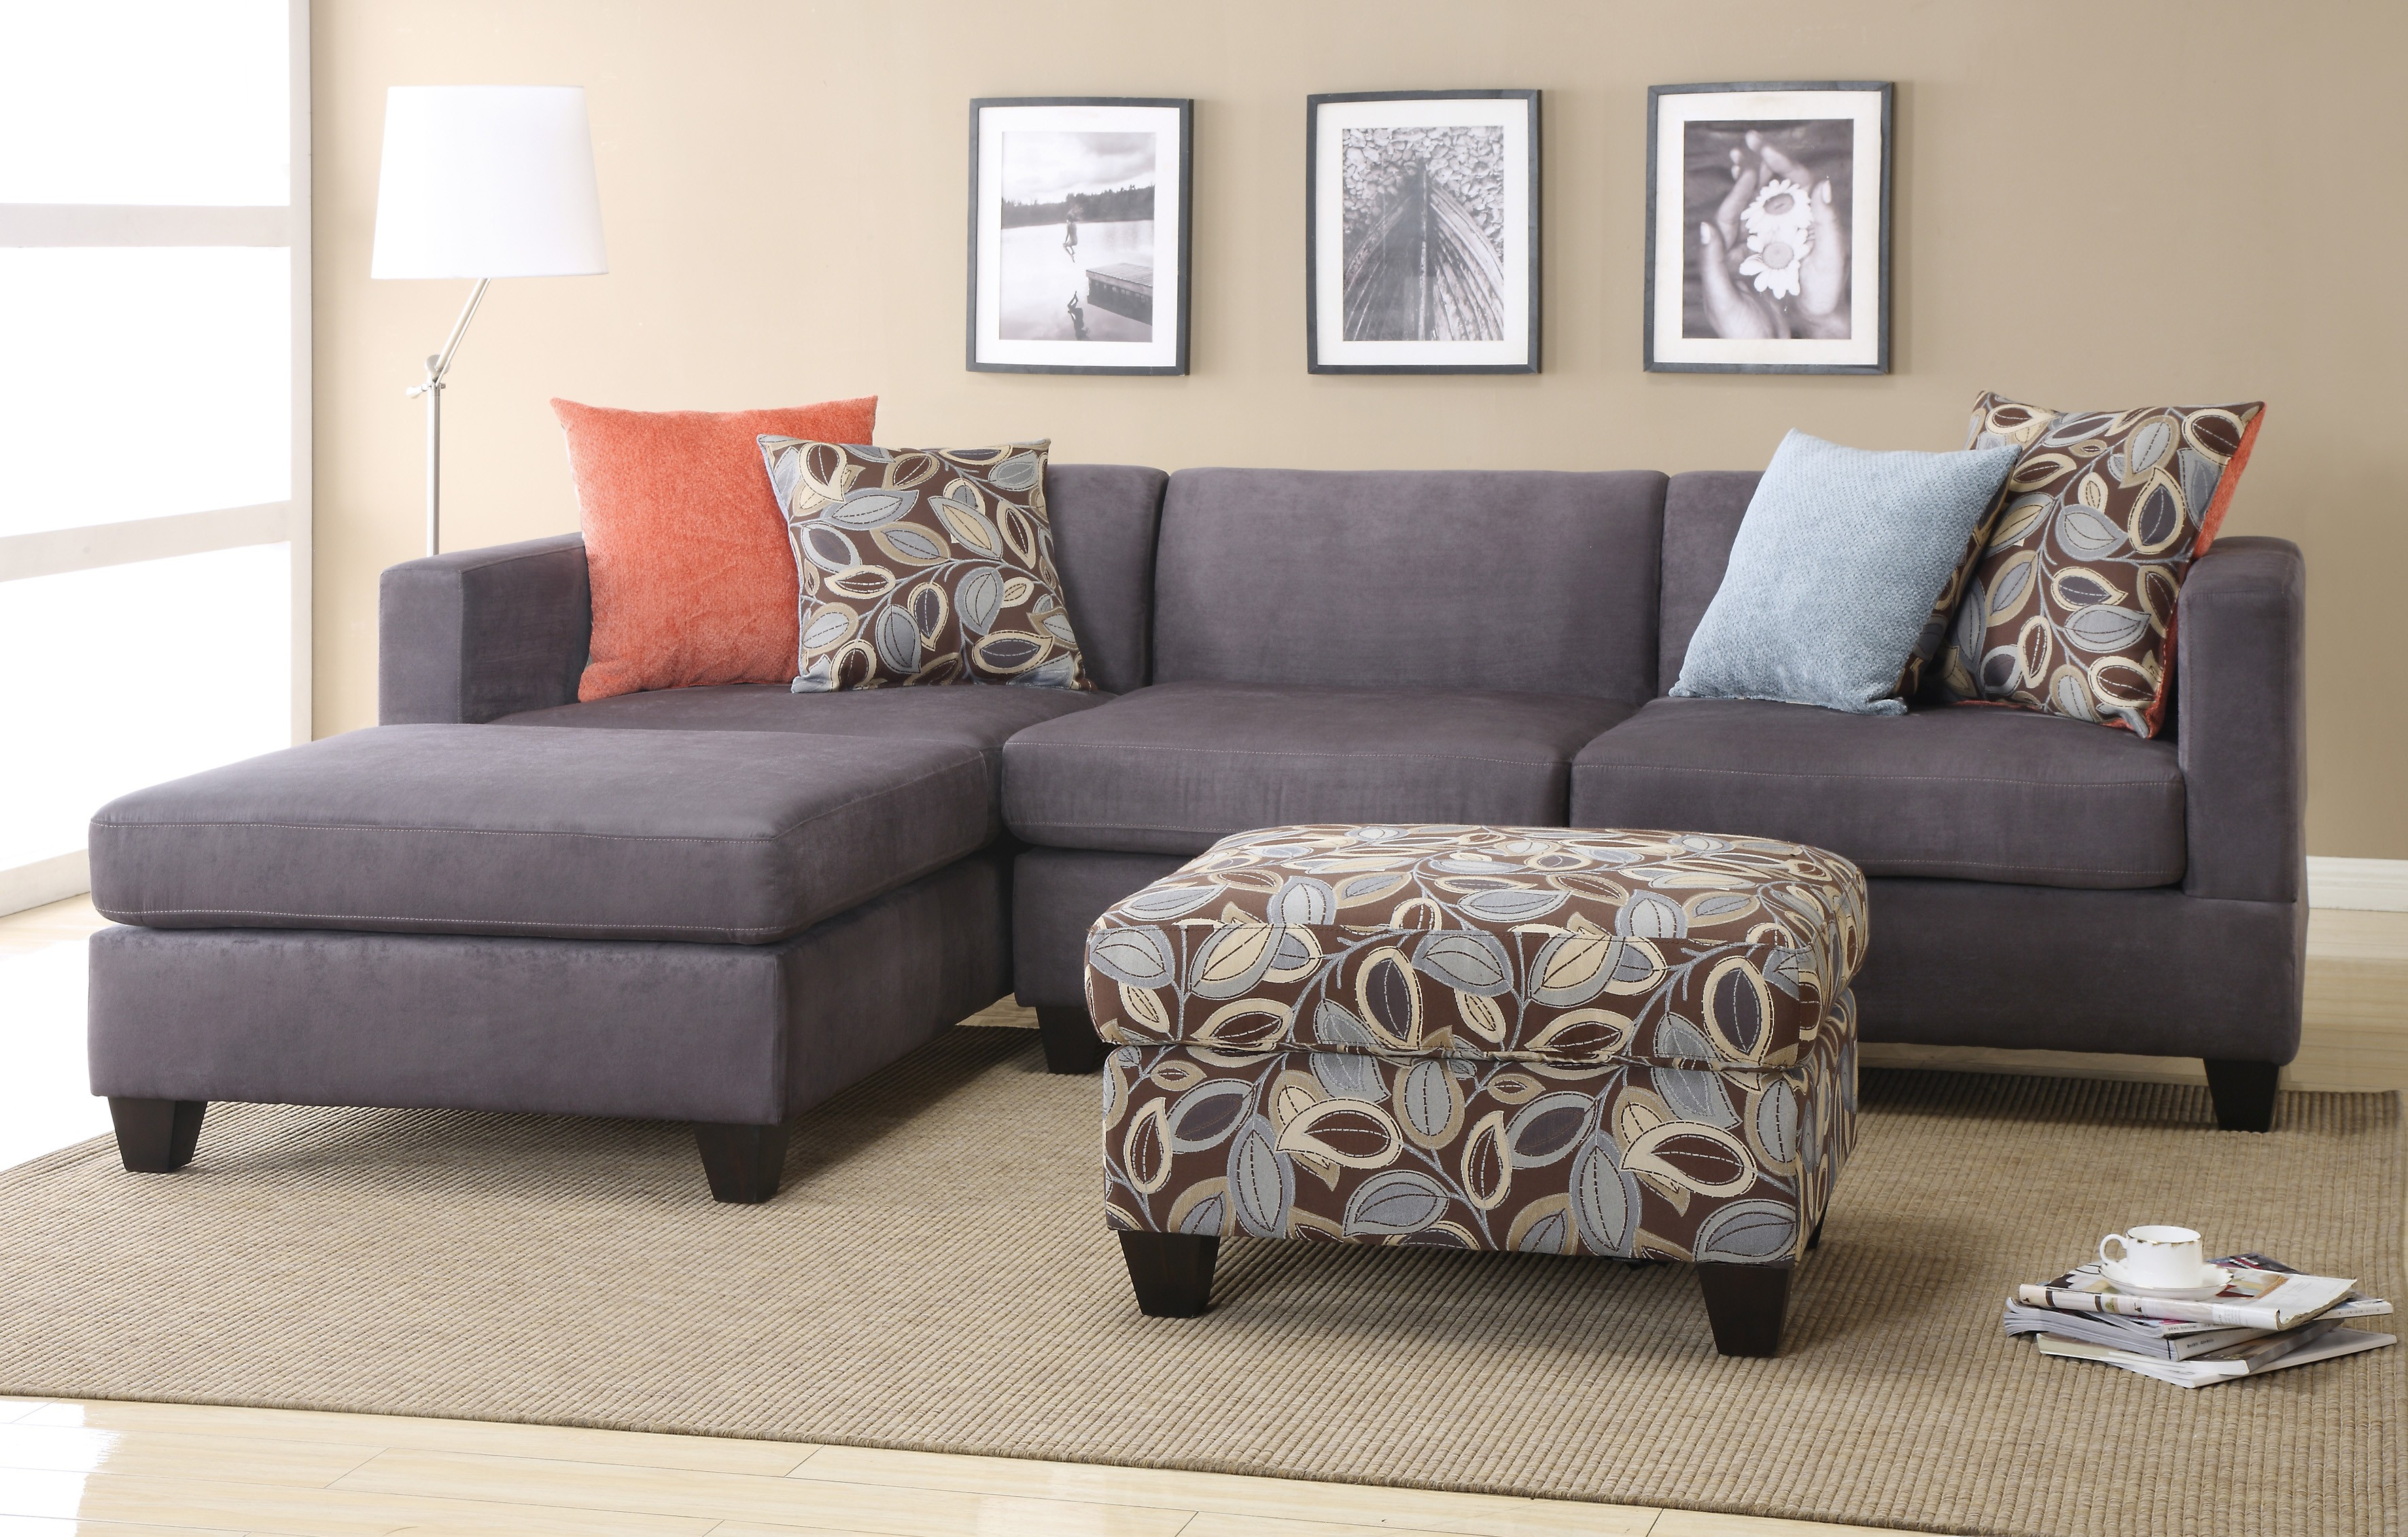 2 piece sectional sofa with chaise design homesfeed for 2 piece sectional sofa with chaise